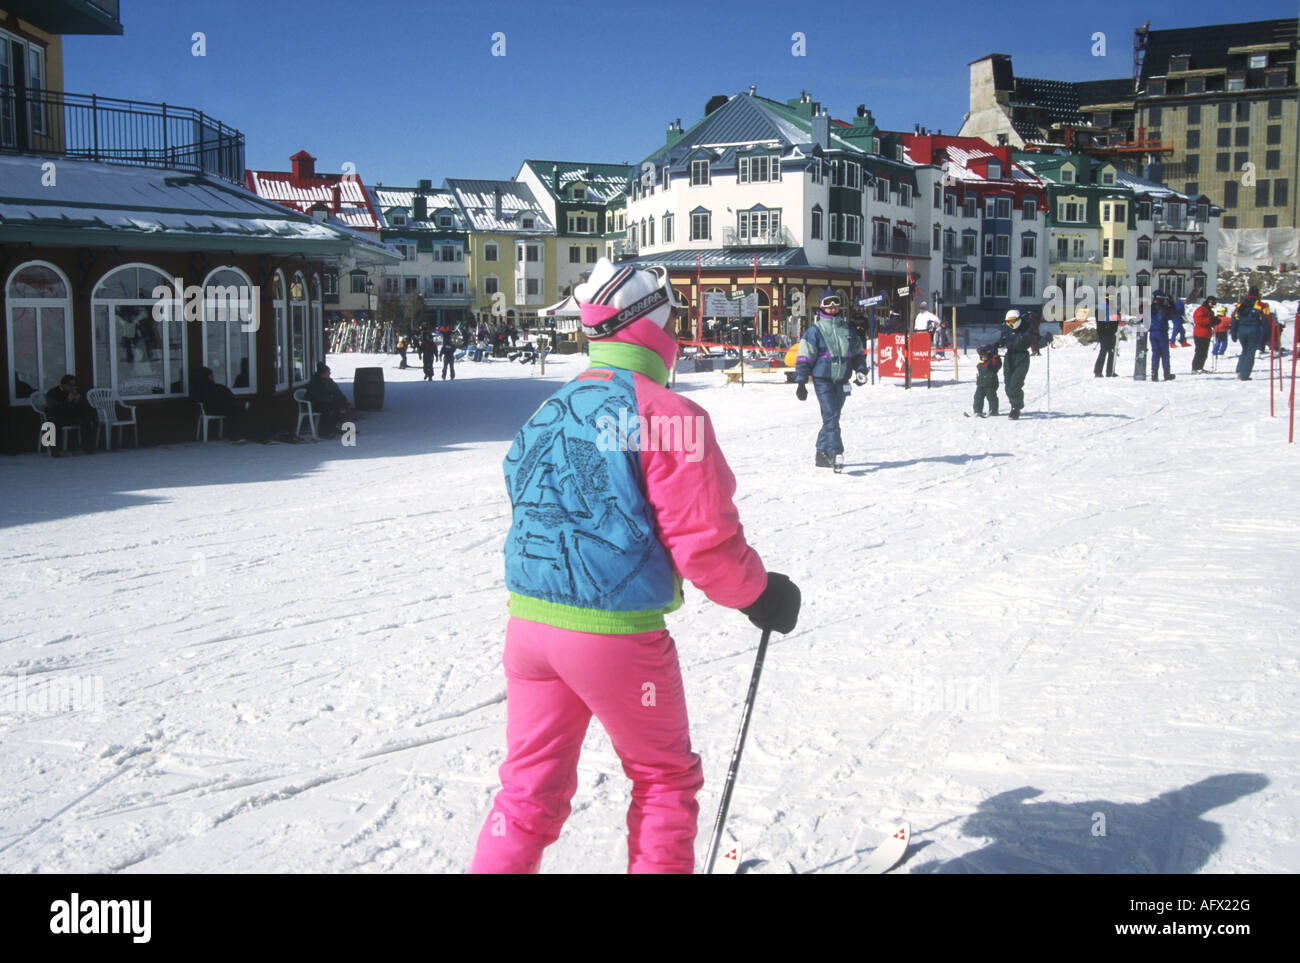 quebec's premier ski resort at mont tremblant is a lively attractive